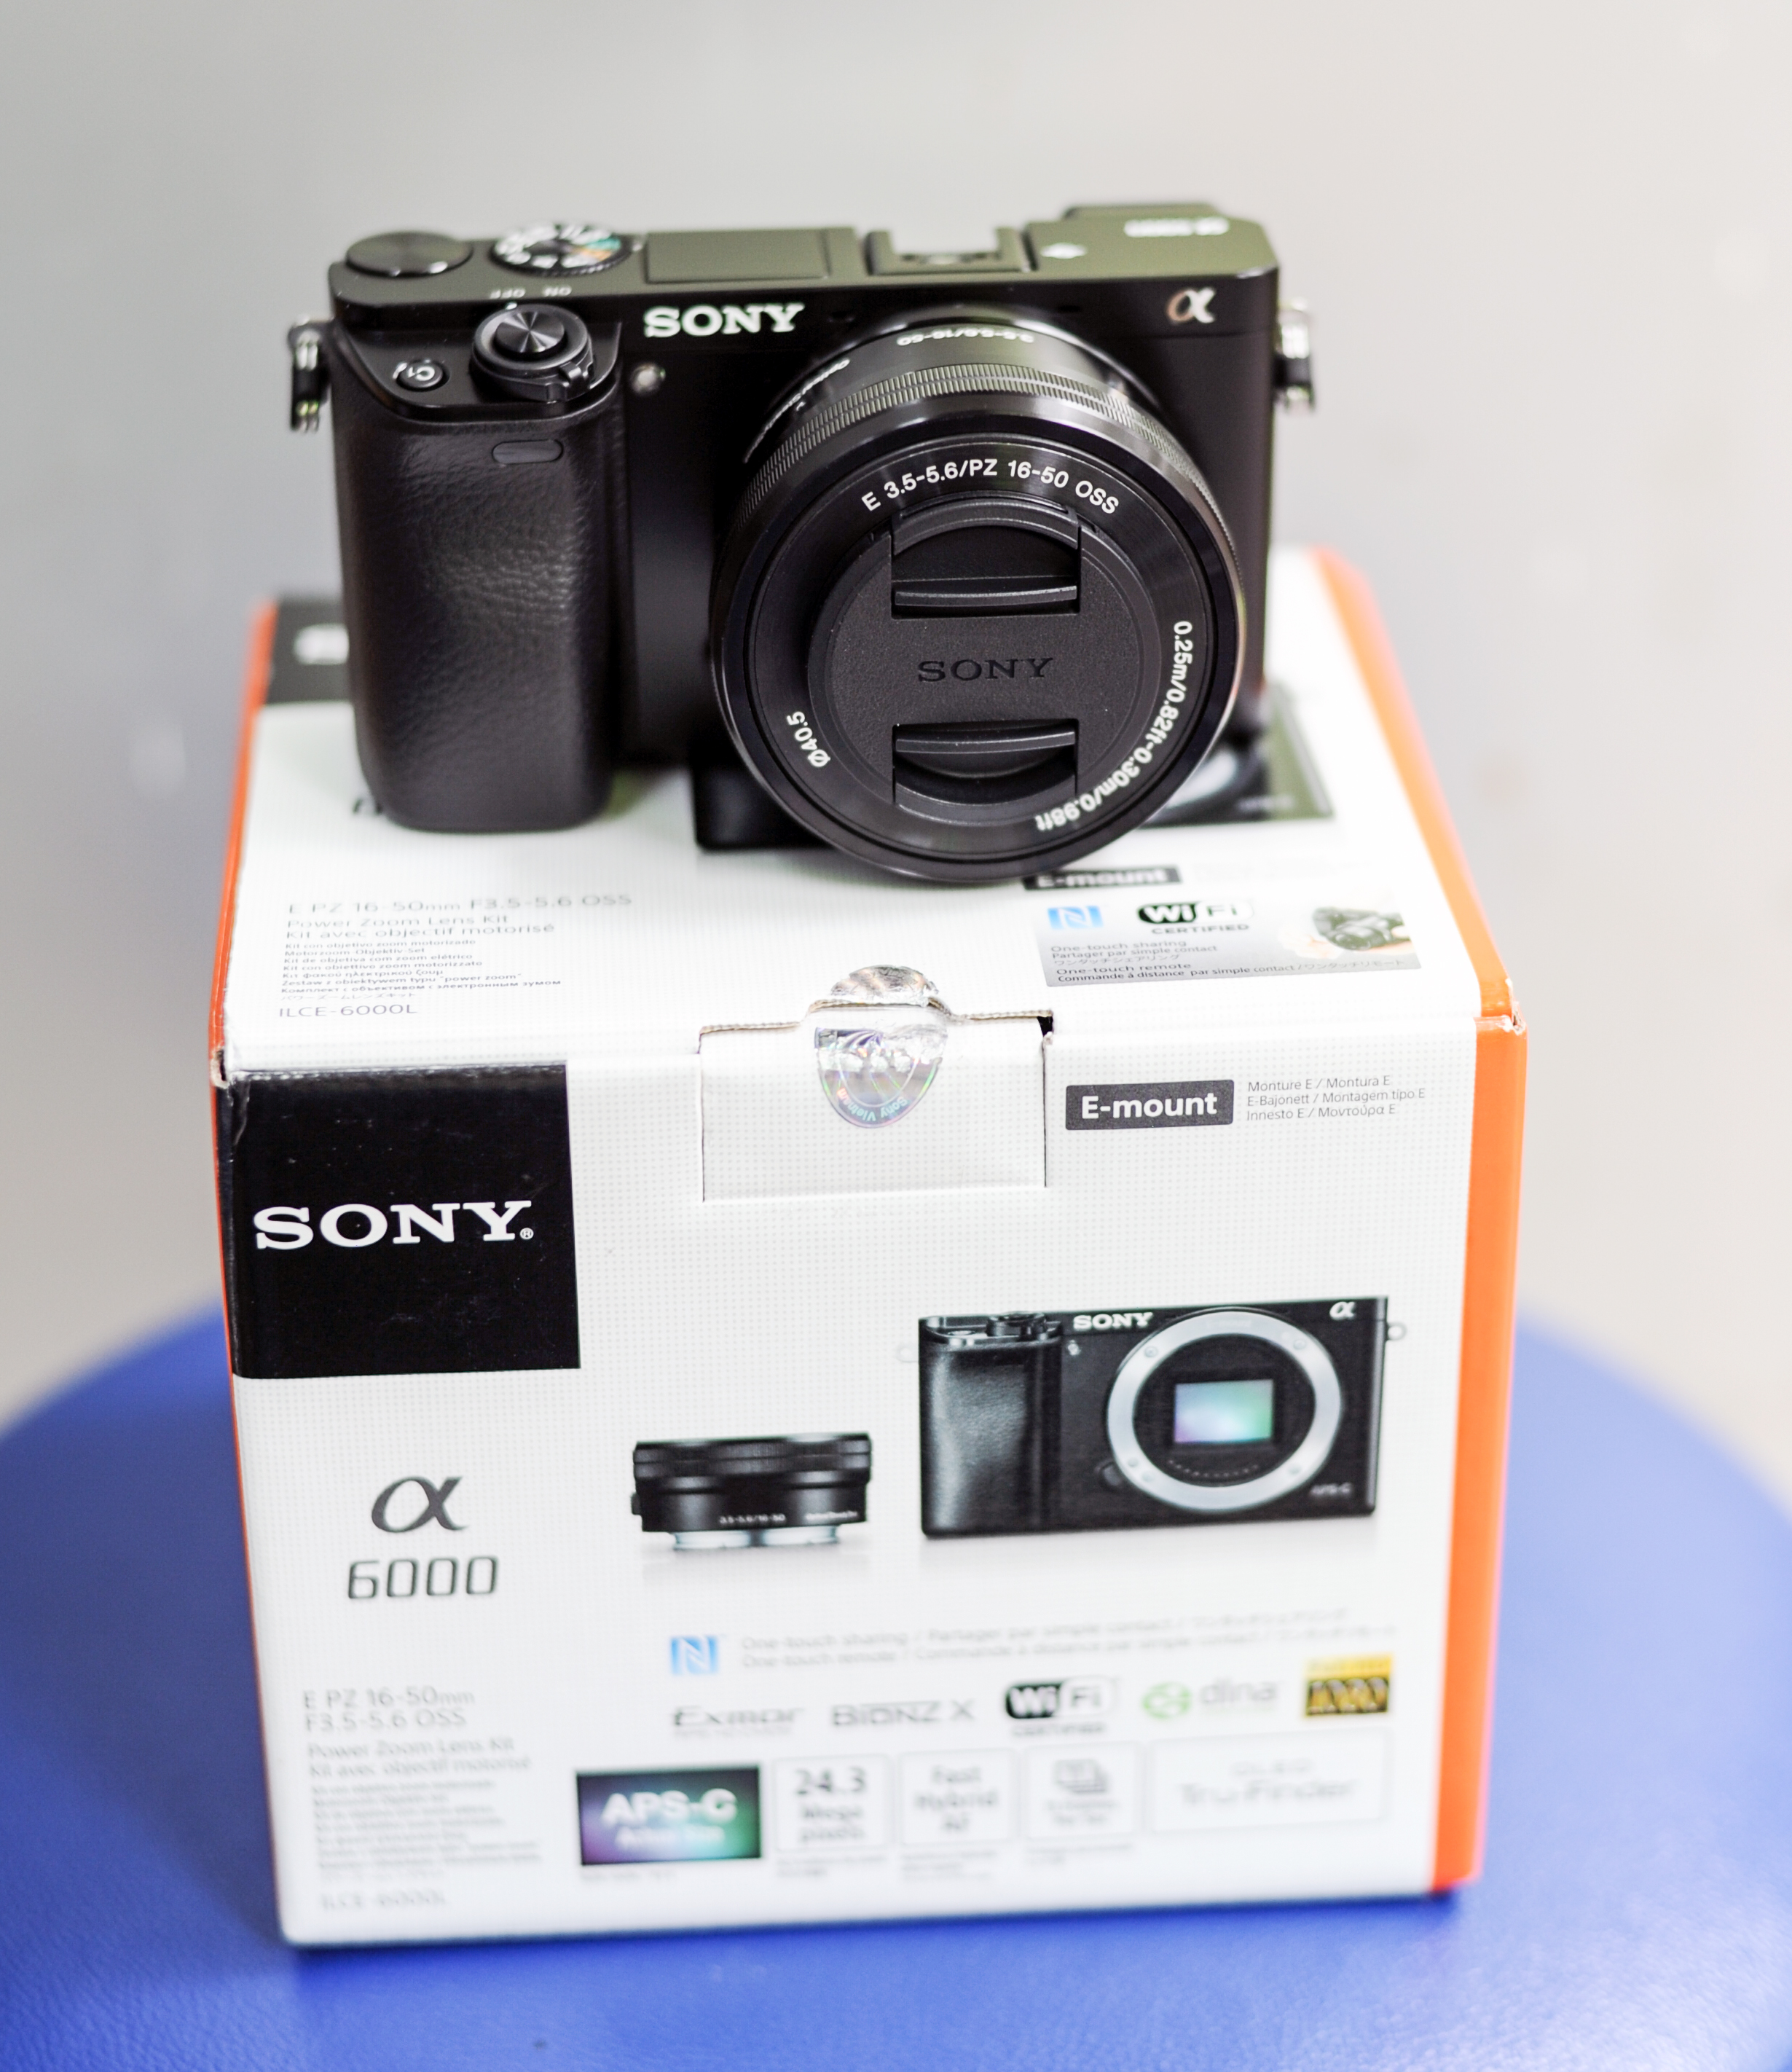 Sony Alpha A6000 (ILCE-6000L/B) with Lens KIT 16-50mm F3.5-5.6 OSS